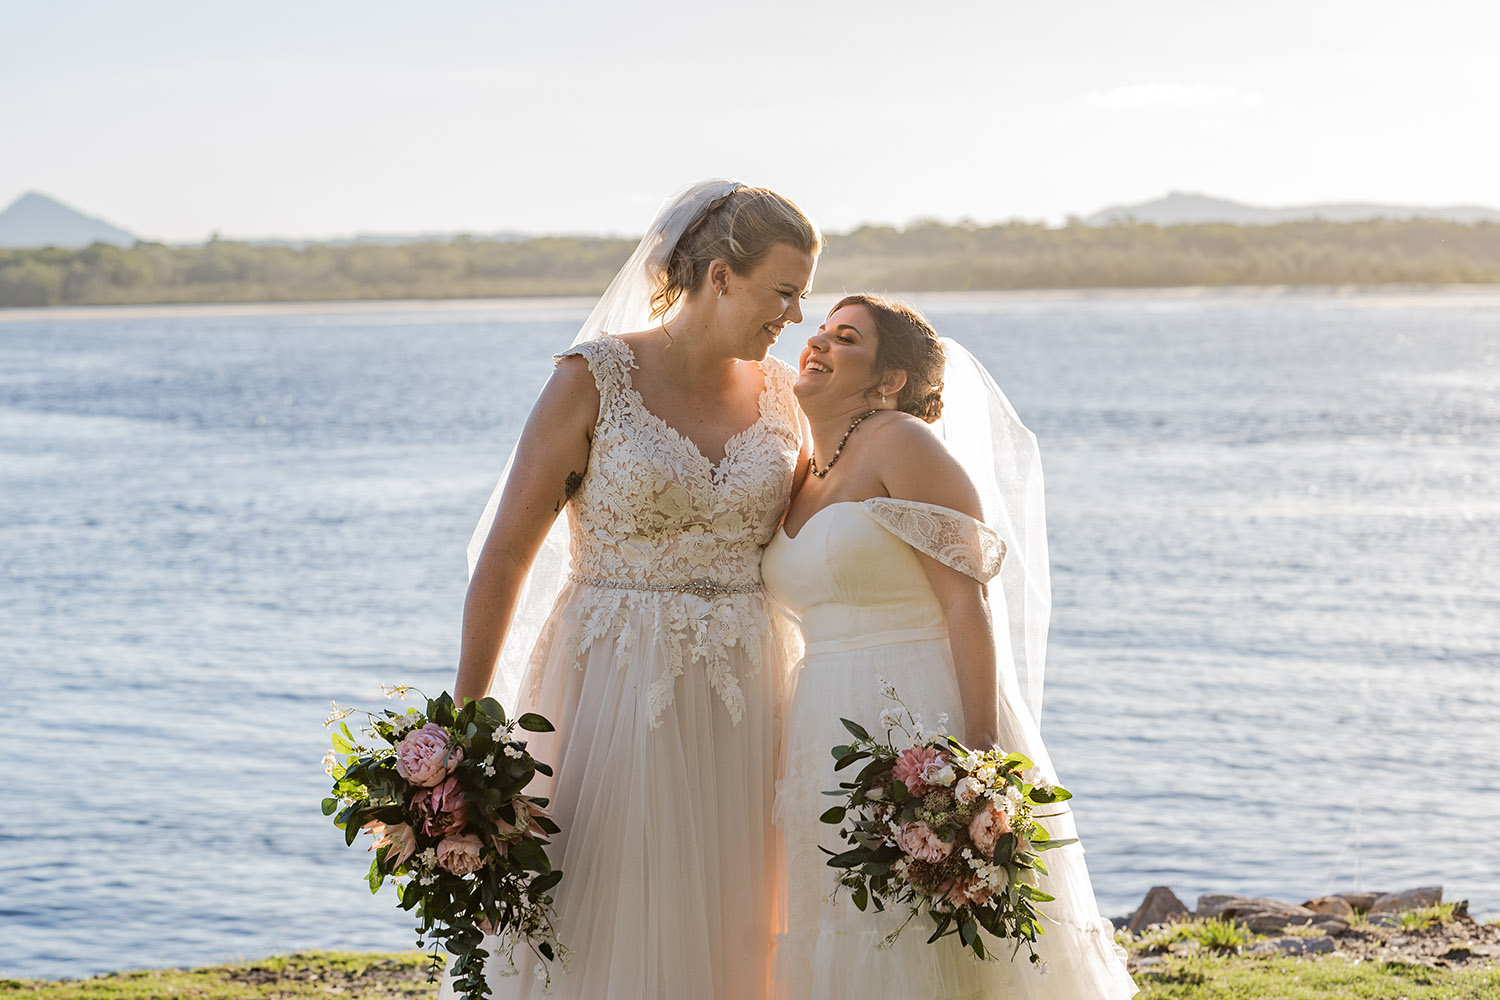 Wedding Photography - Brides in front of water